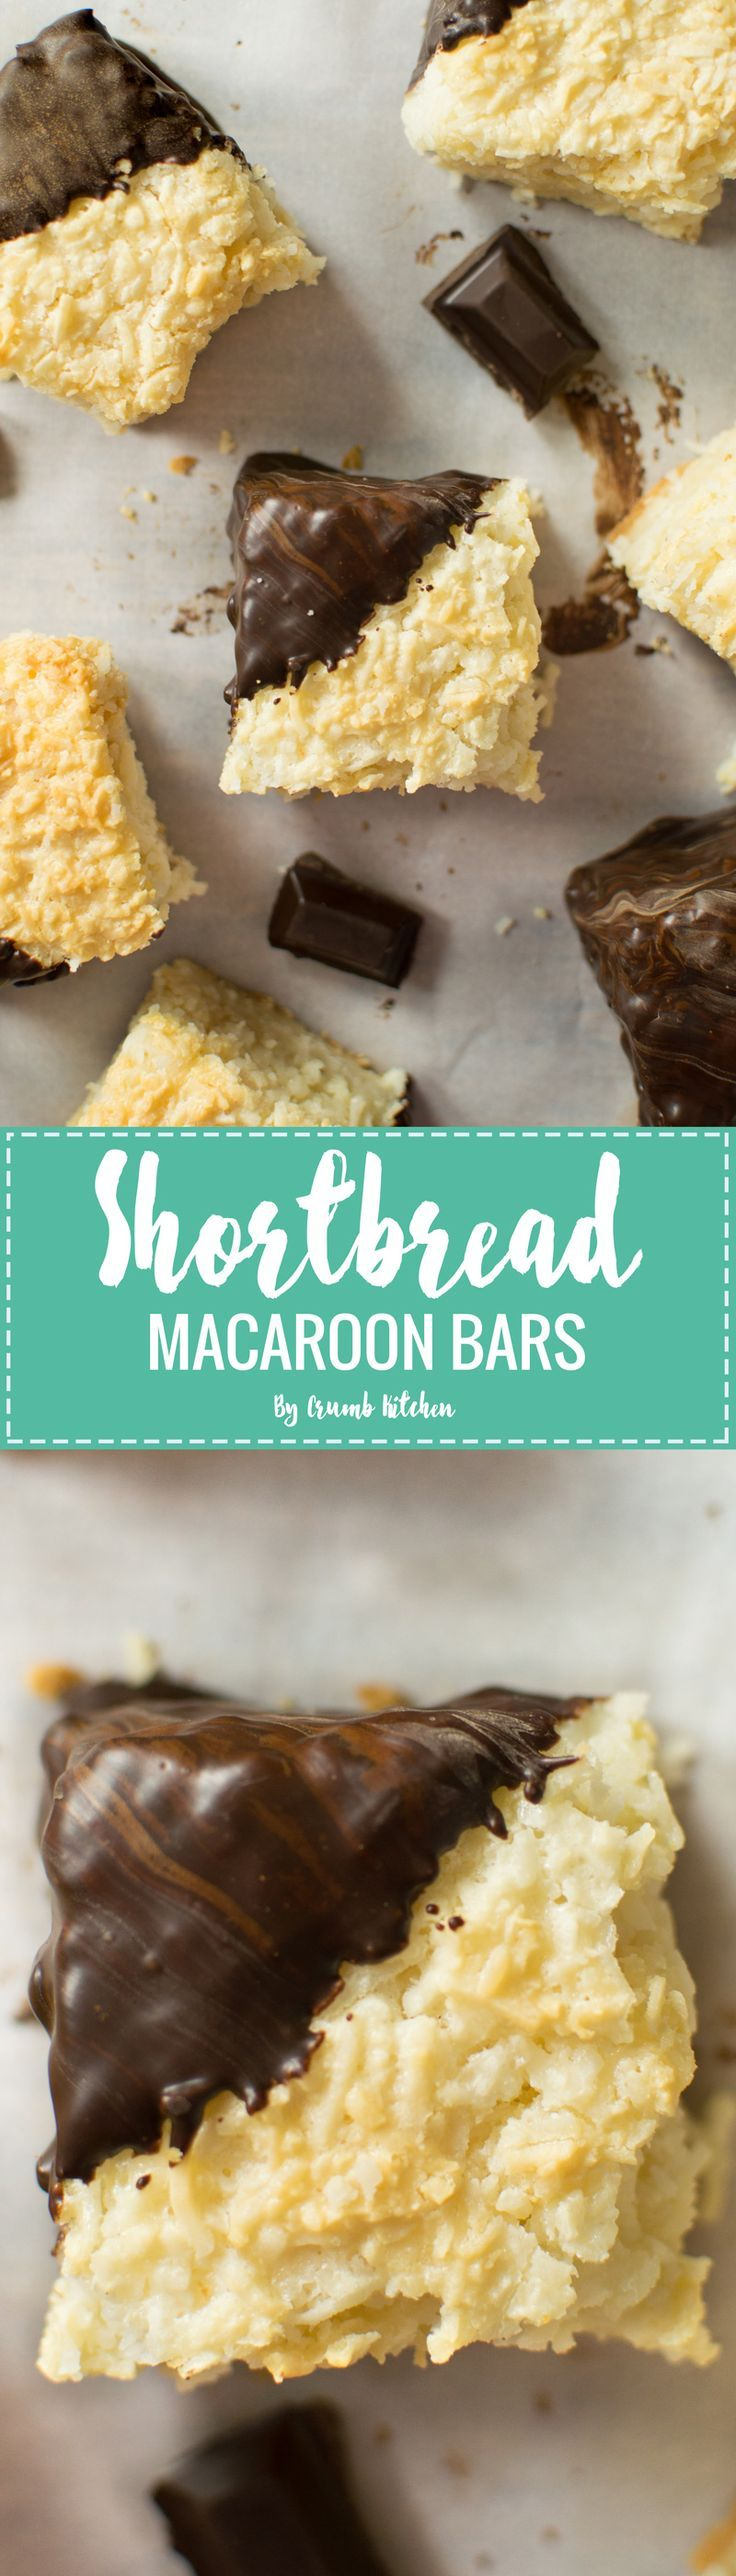 228 best Coconut Treats images on Pinterest   Drink, Healthy ...